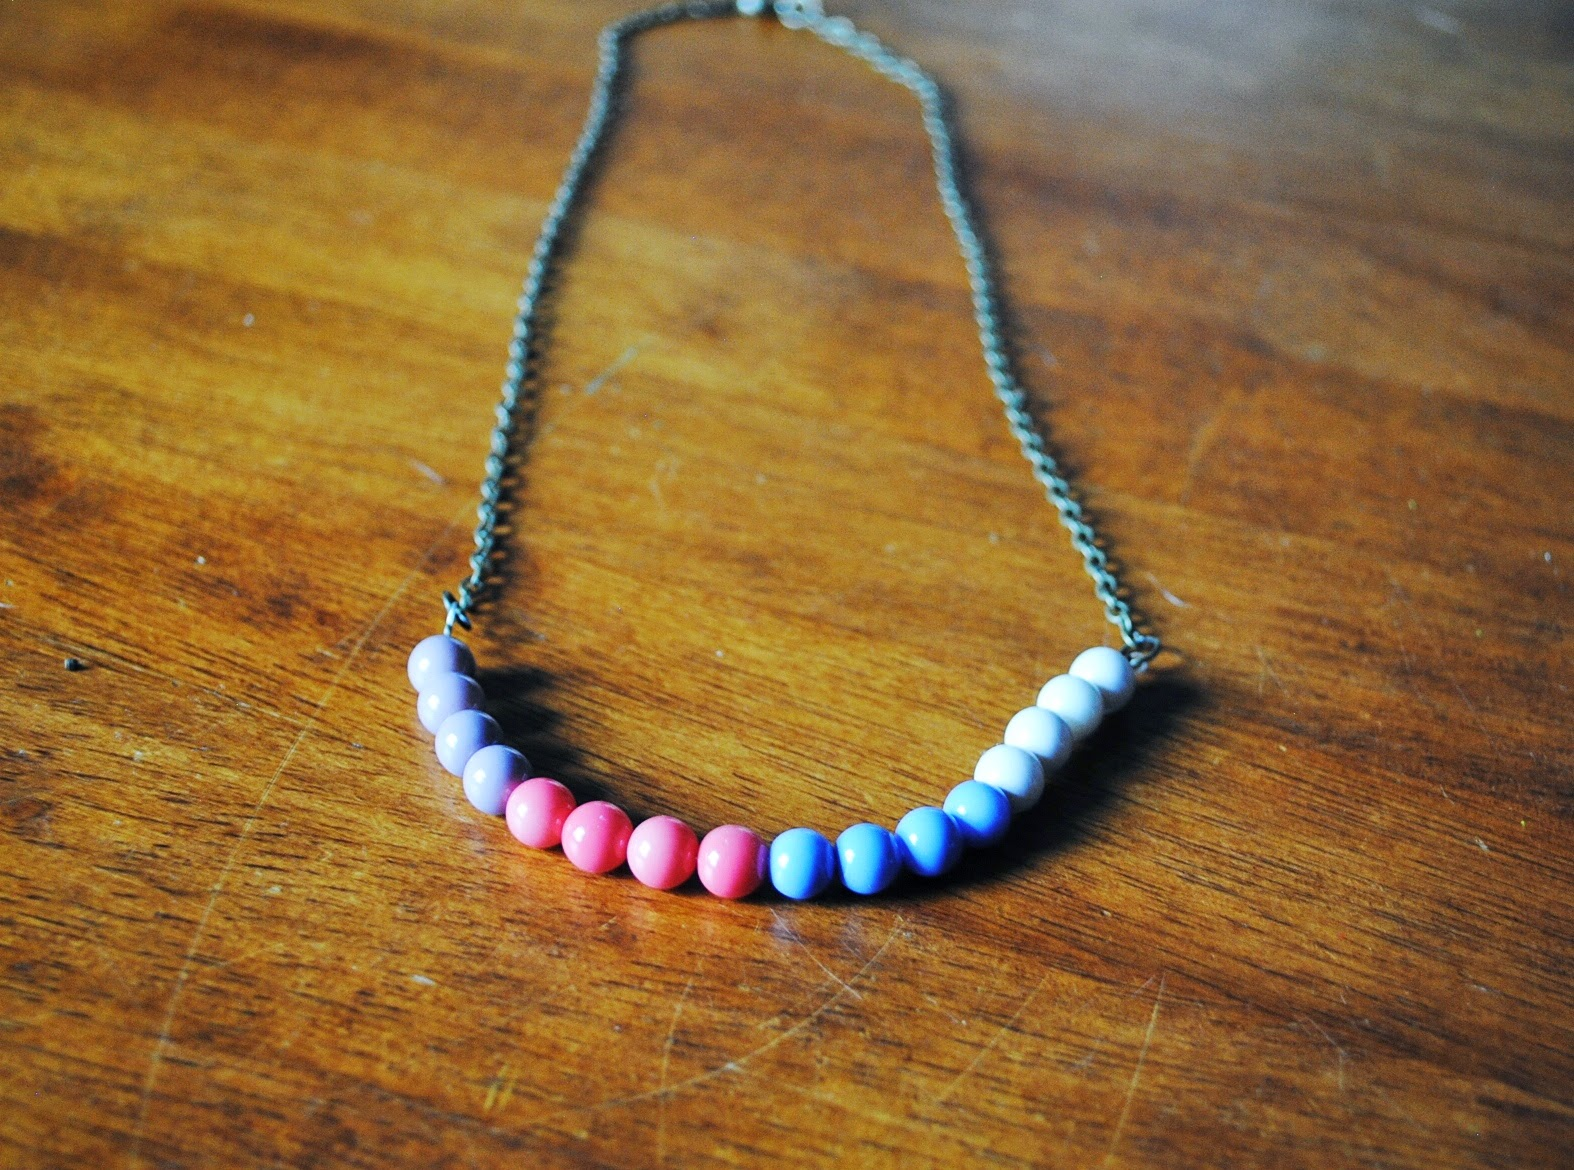 Crafting Wire: How to Make Simple Beaded Chain Necklace in 10 Minutes